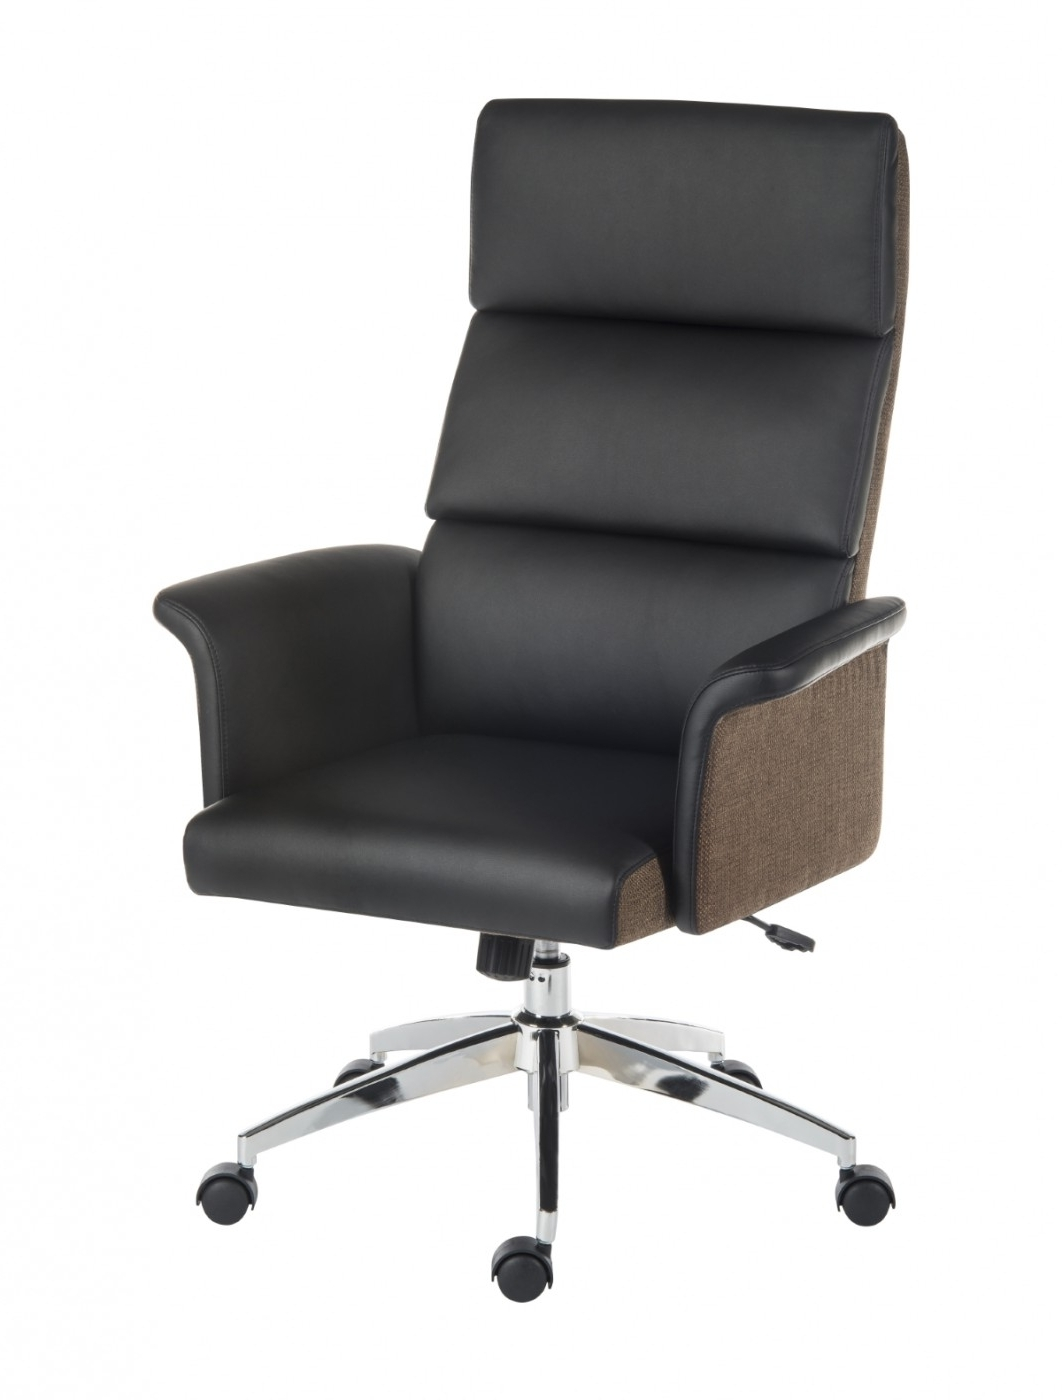 Best And Newest Office Chairs – Teknik Elegance High Back Executive Office Chair Within High Back Executive Office Chairs (View 5 of 20)